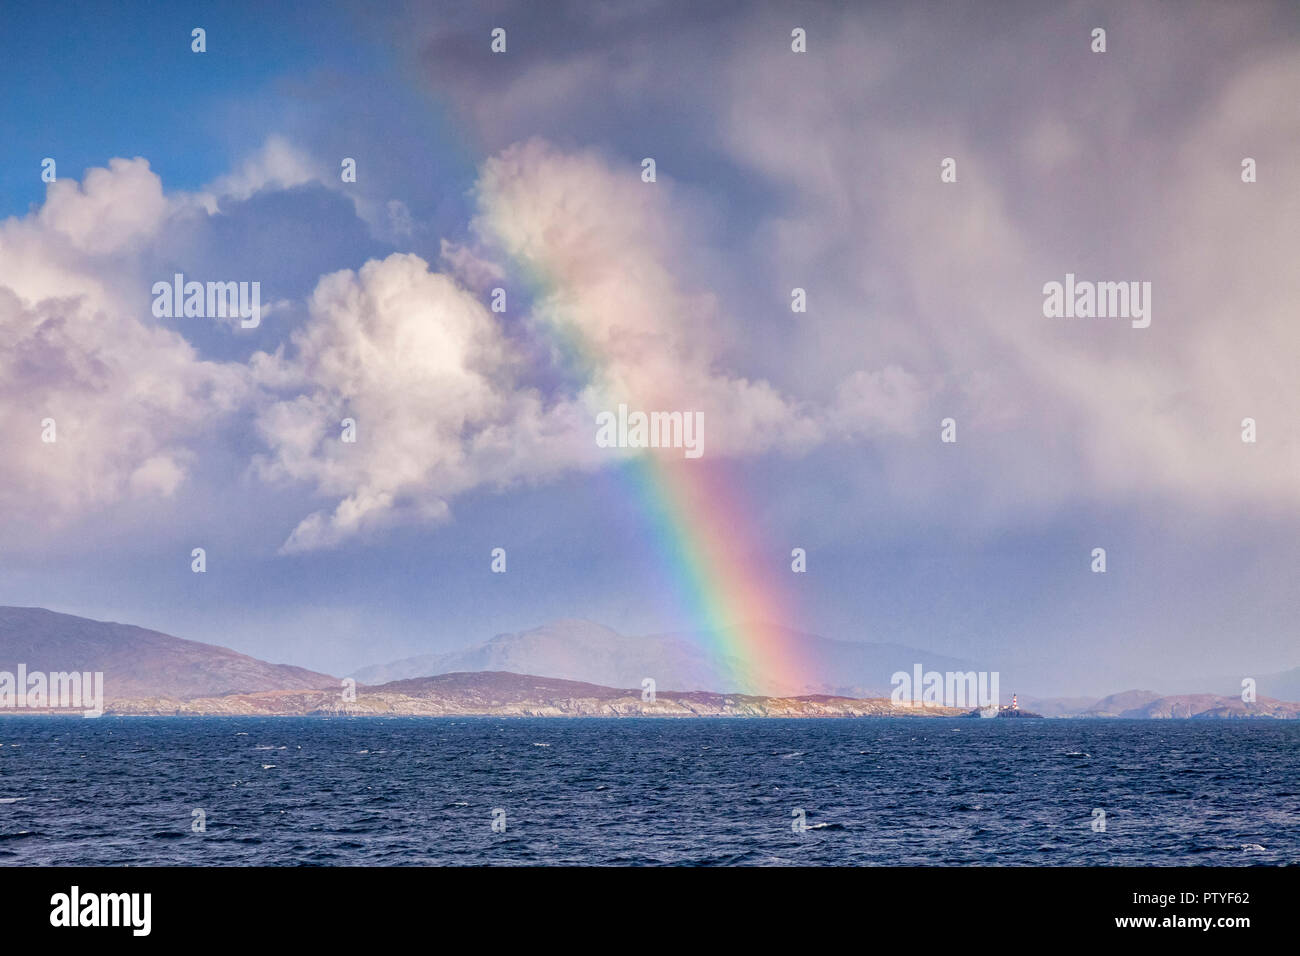 View from the sea of rainbow and Eilean Glas lighthouse approaching the port of Tarbert on the Isle of Harris, Outer Hebrides,Scotland,UK. - Stock Image